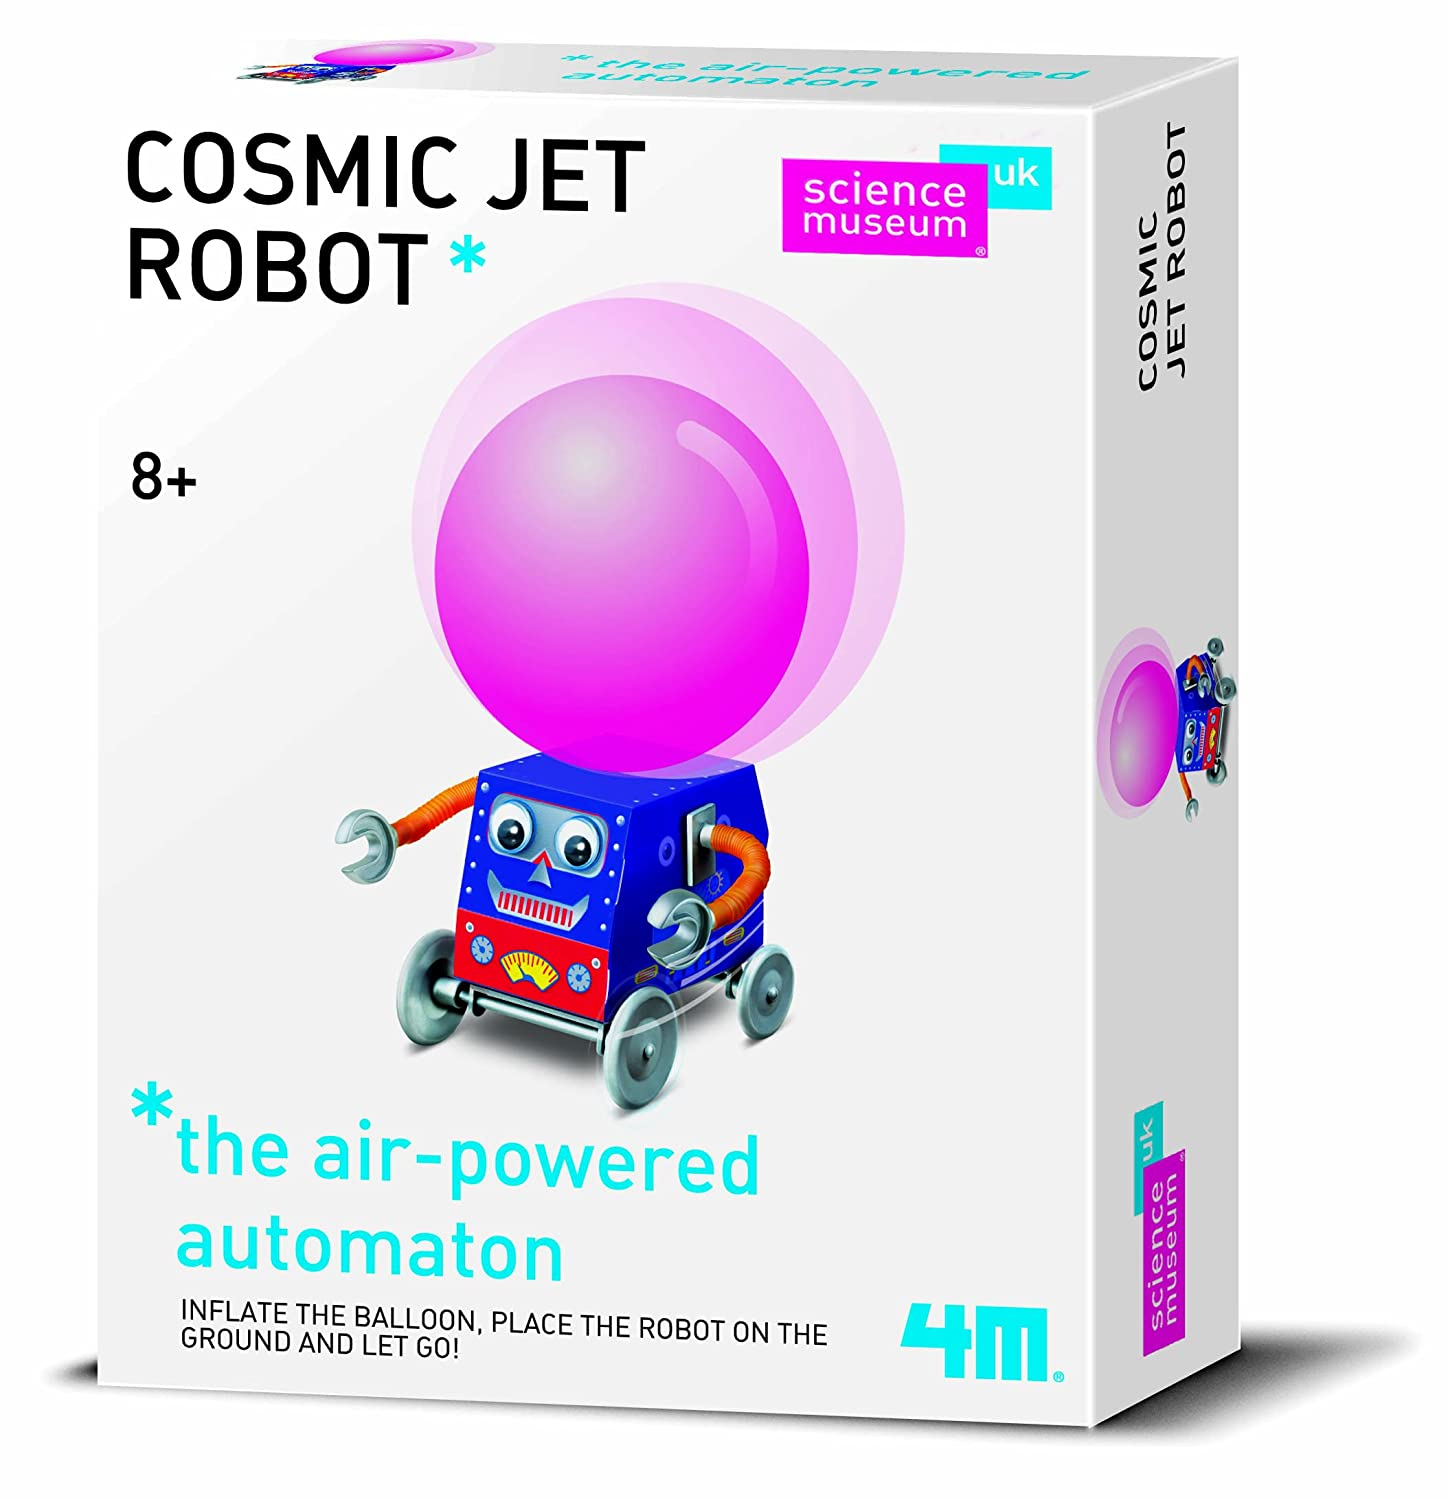 Good Value Build Your Own Experiment - Science Museum Cosmic Jet Robot - Great Gift Present Idea for Birthdays Christmas Xmas Stocking Fillers Top Ups Treats Rewards Pocket Money Easter Fun Toys & Games - Girl Girls Boy Boys Children Kids Child - One S